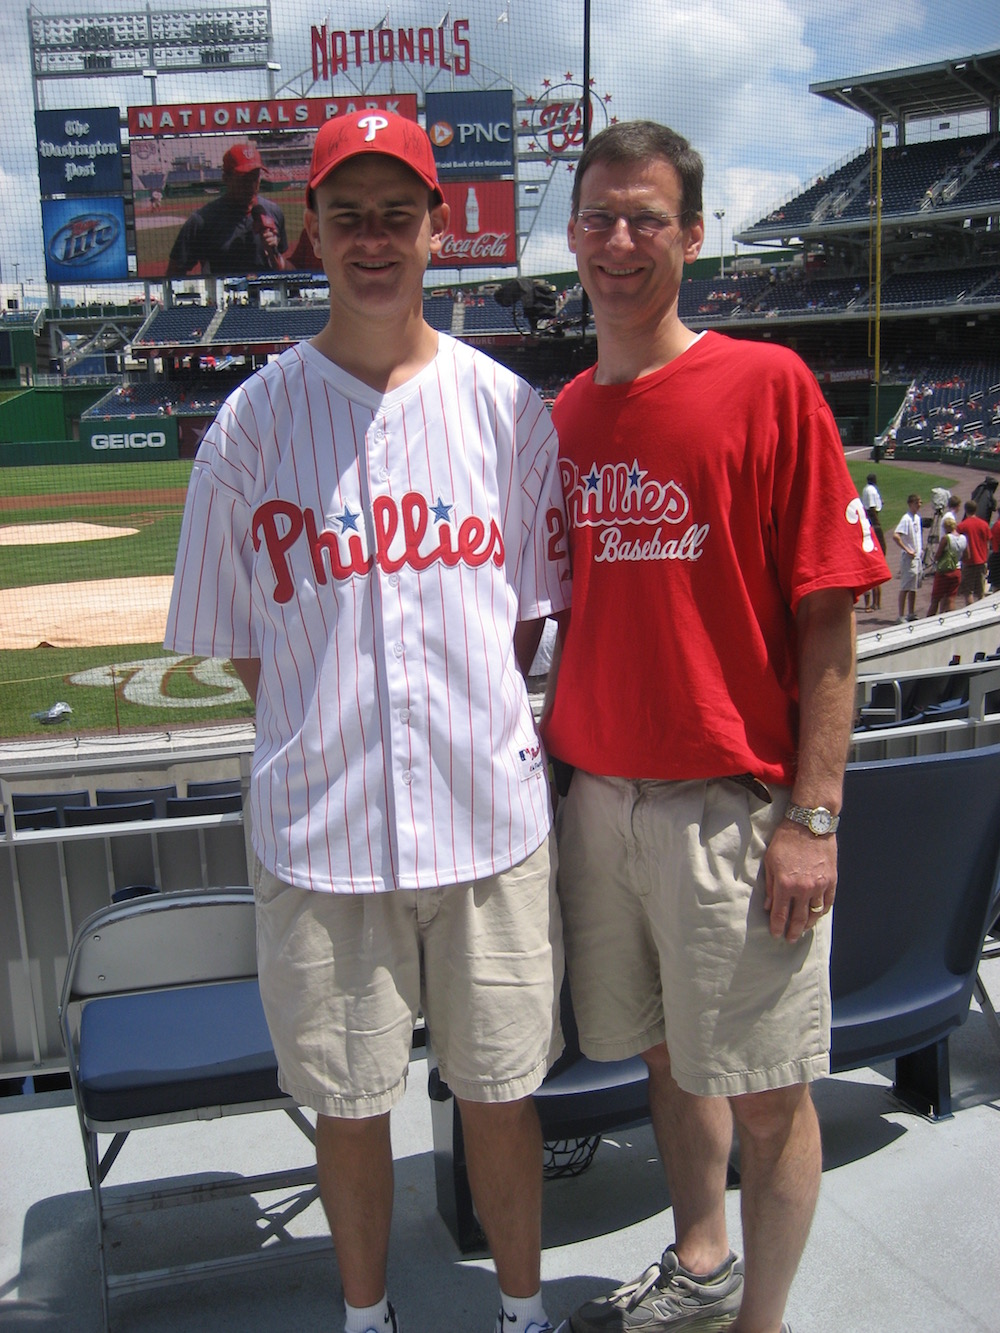 Phillies game with my dad during the 2010 season